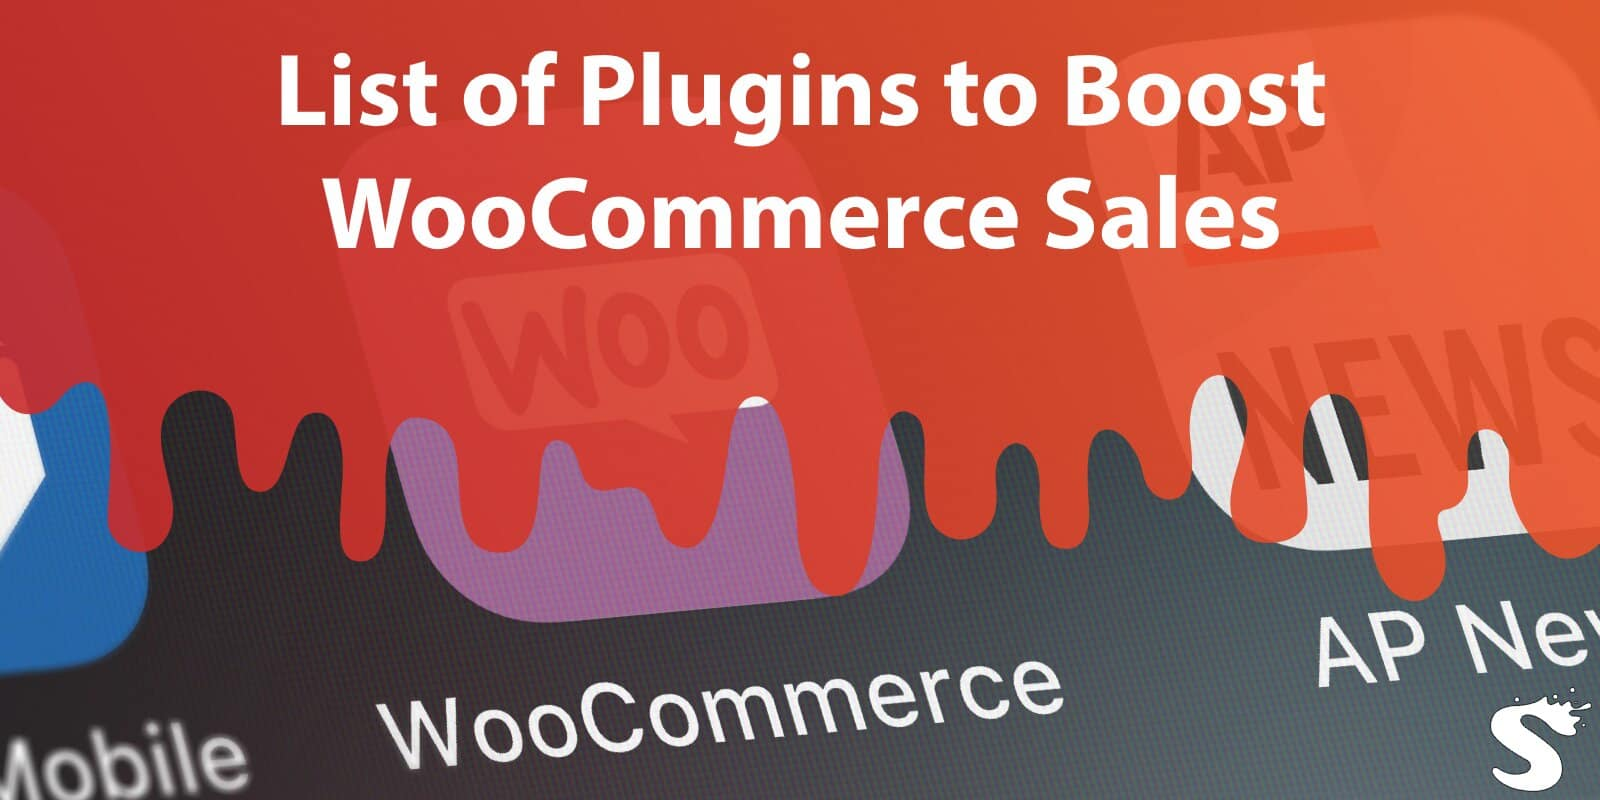 List of Plugins to Boost Woocommerce Sales